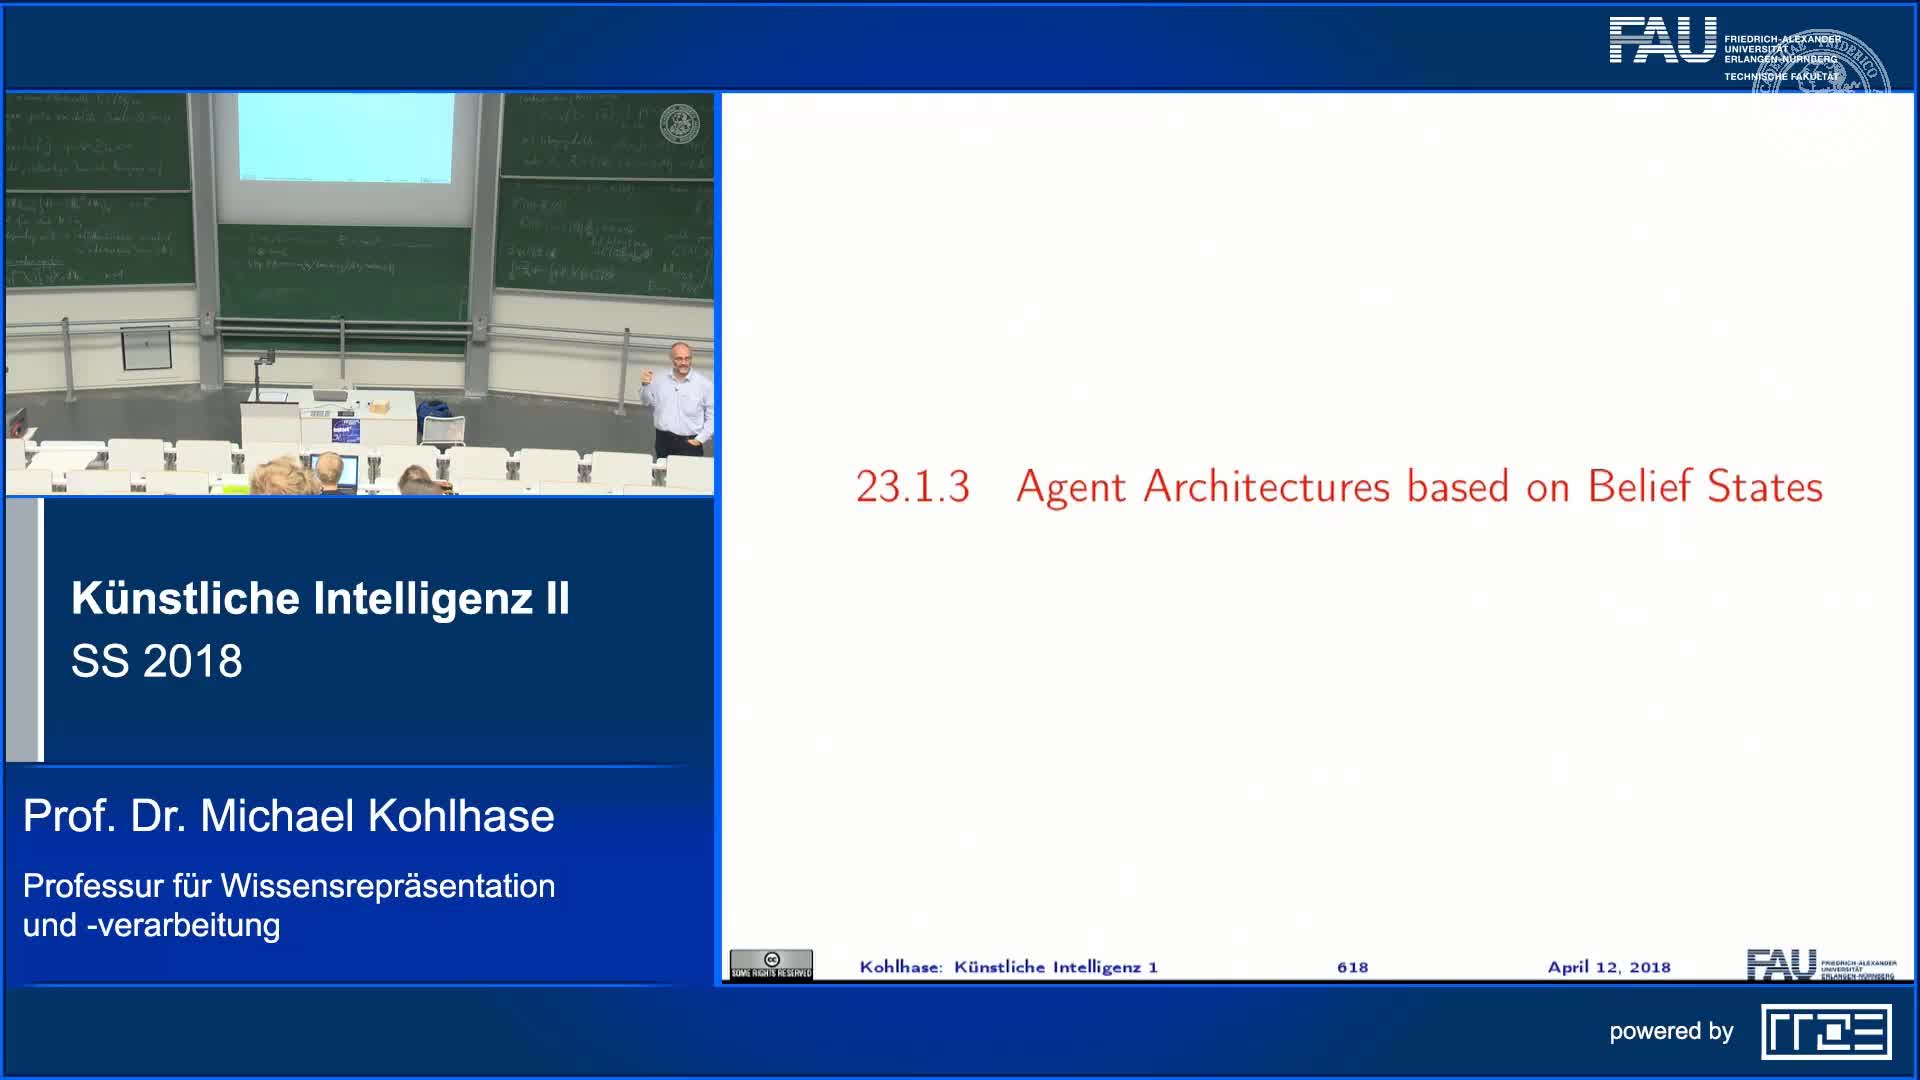 20.1.3. Agent Architectures based on Belief States preview image